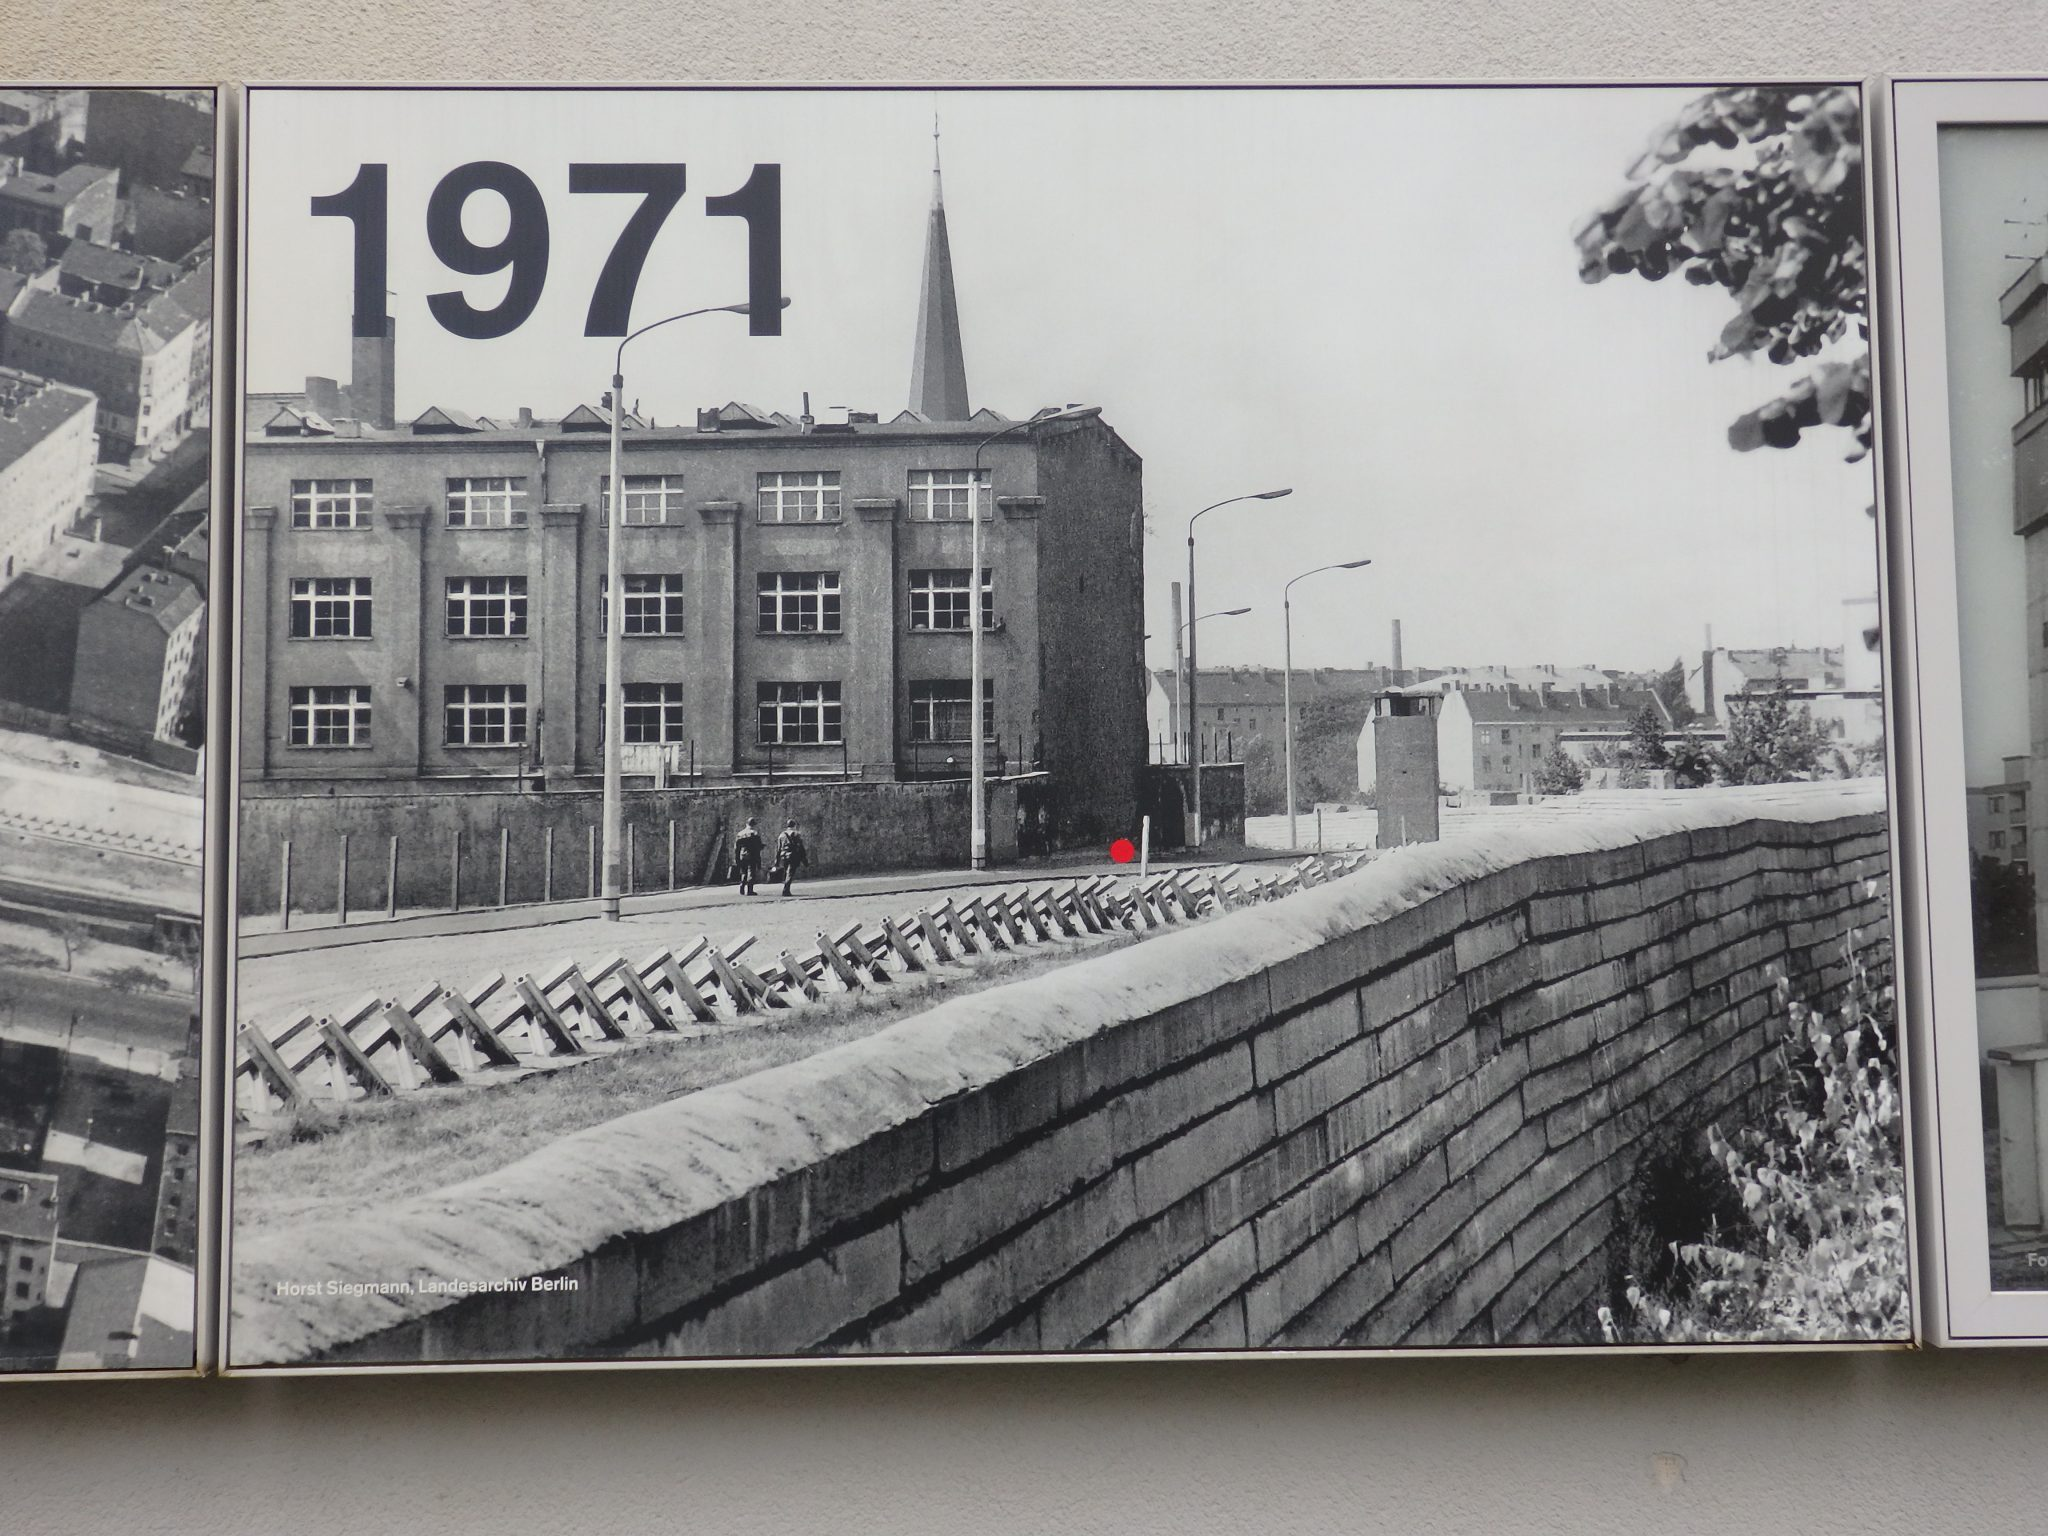 One of a series of historical photos illustrating the development of the Wall in the Berlin Wall Memorial.